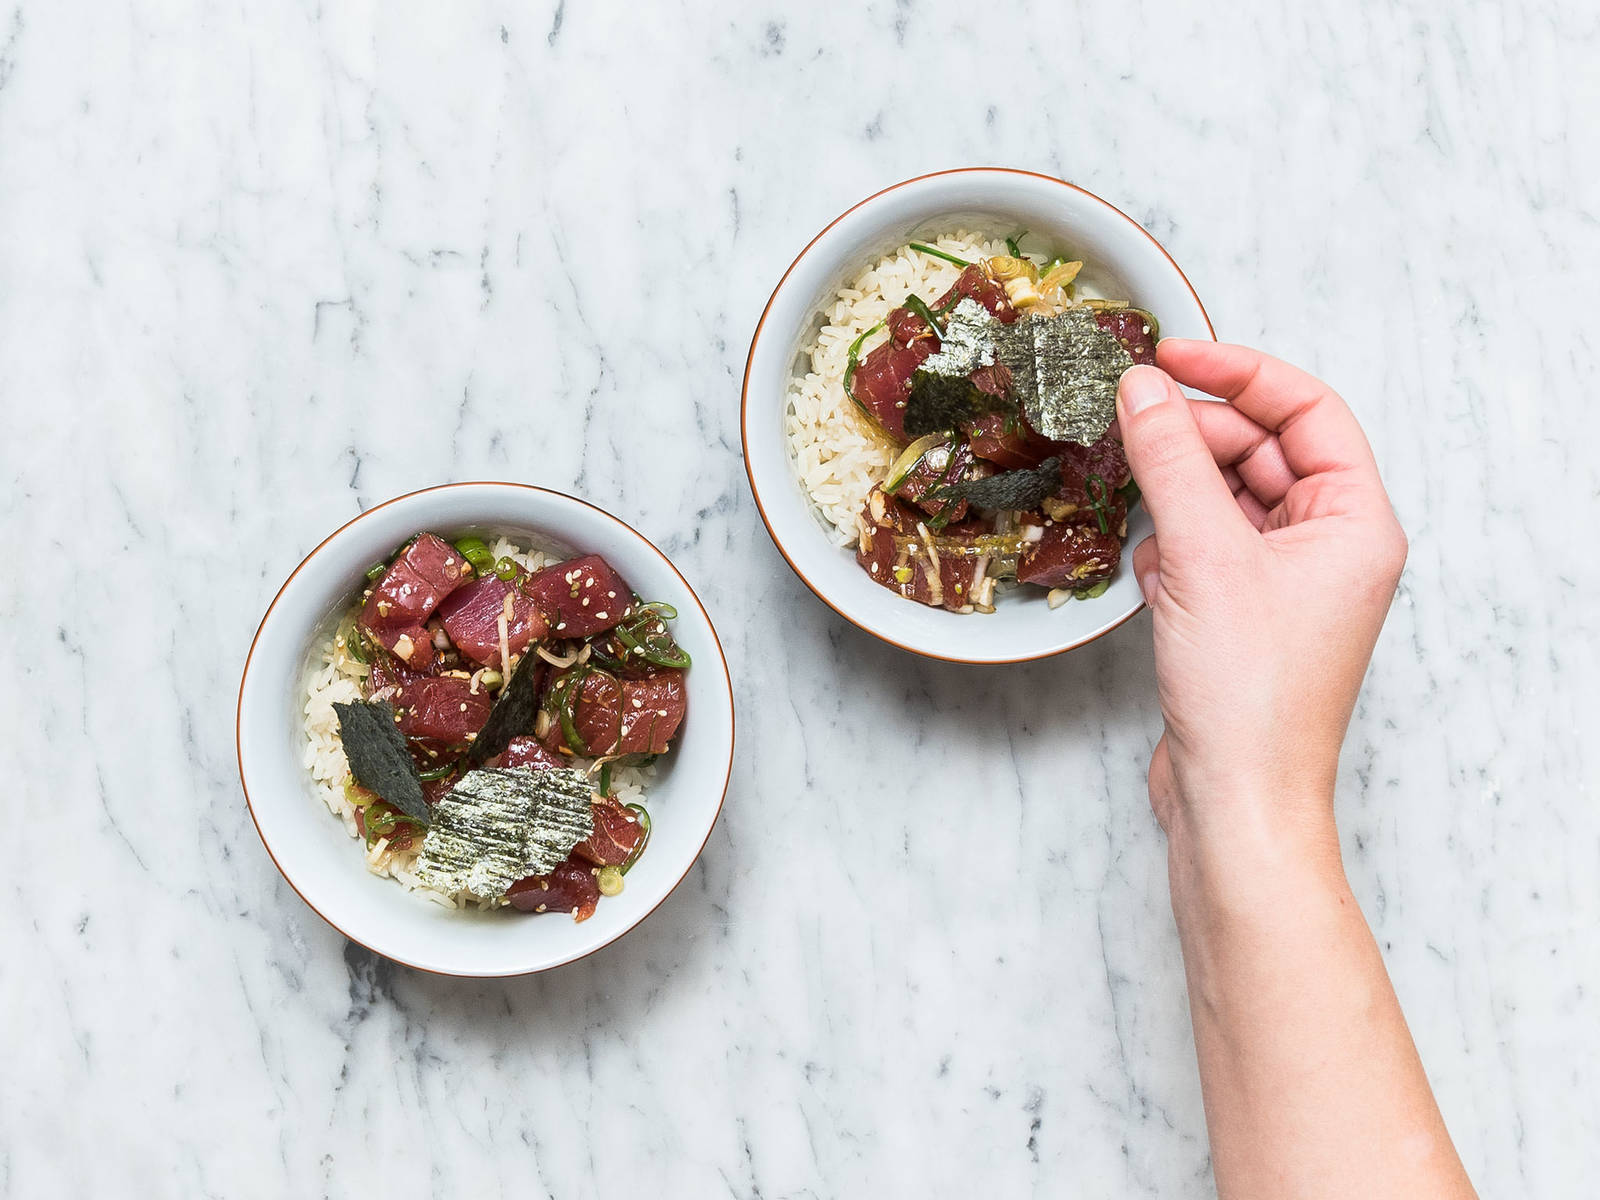 Divide the rice between 2 bowls. Arrange the tuna on top of the rice and sprinkle with shredded nori. Serve immediately. Enjoy!